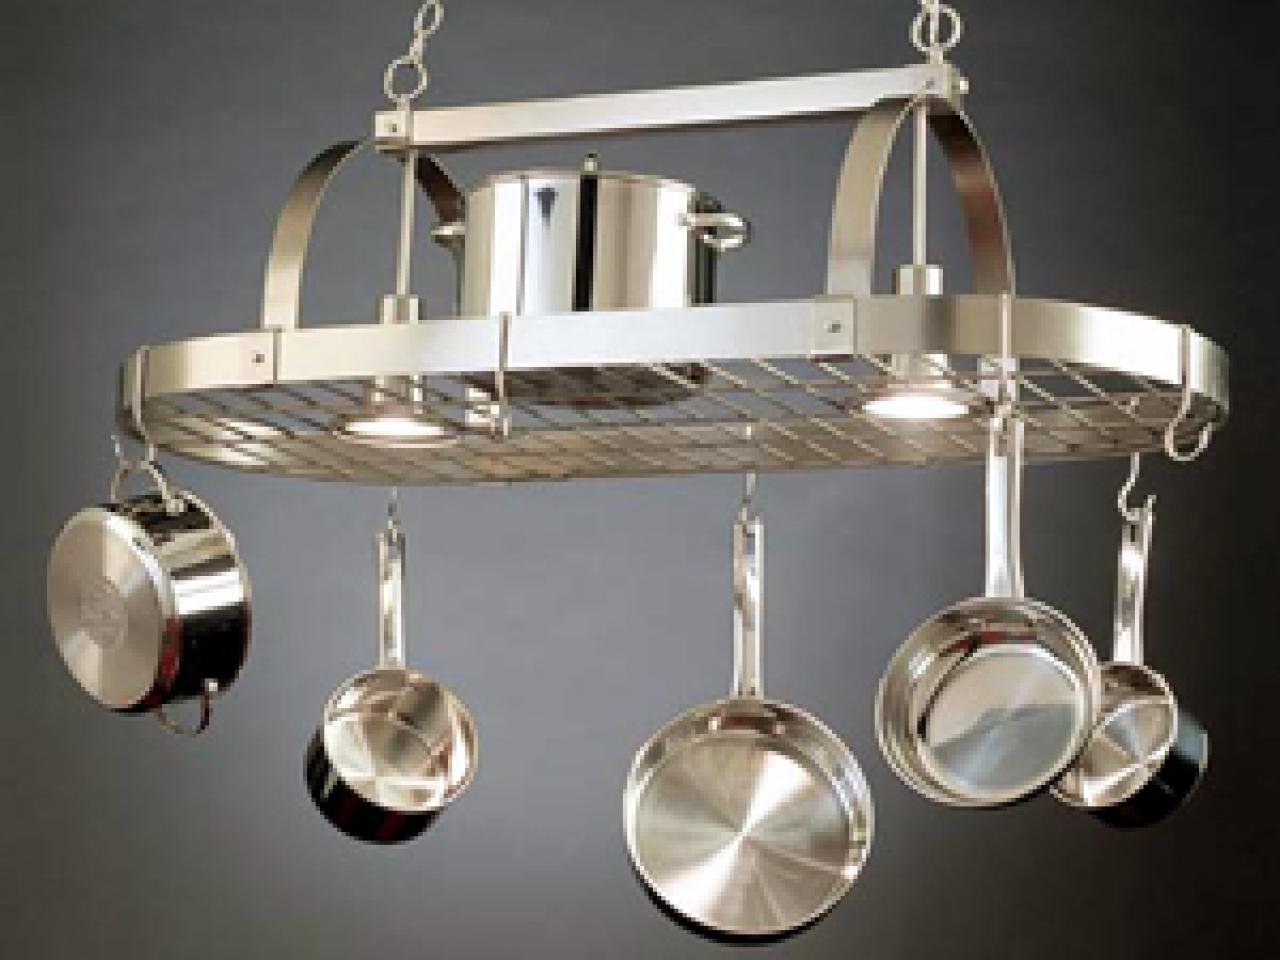 A Pot Rack In Its Proper Place